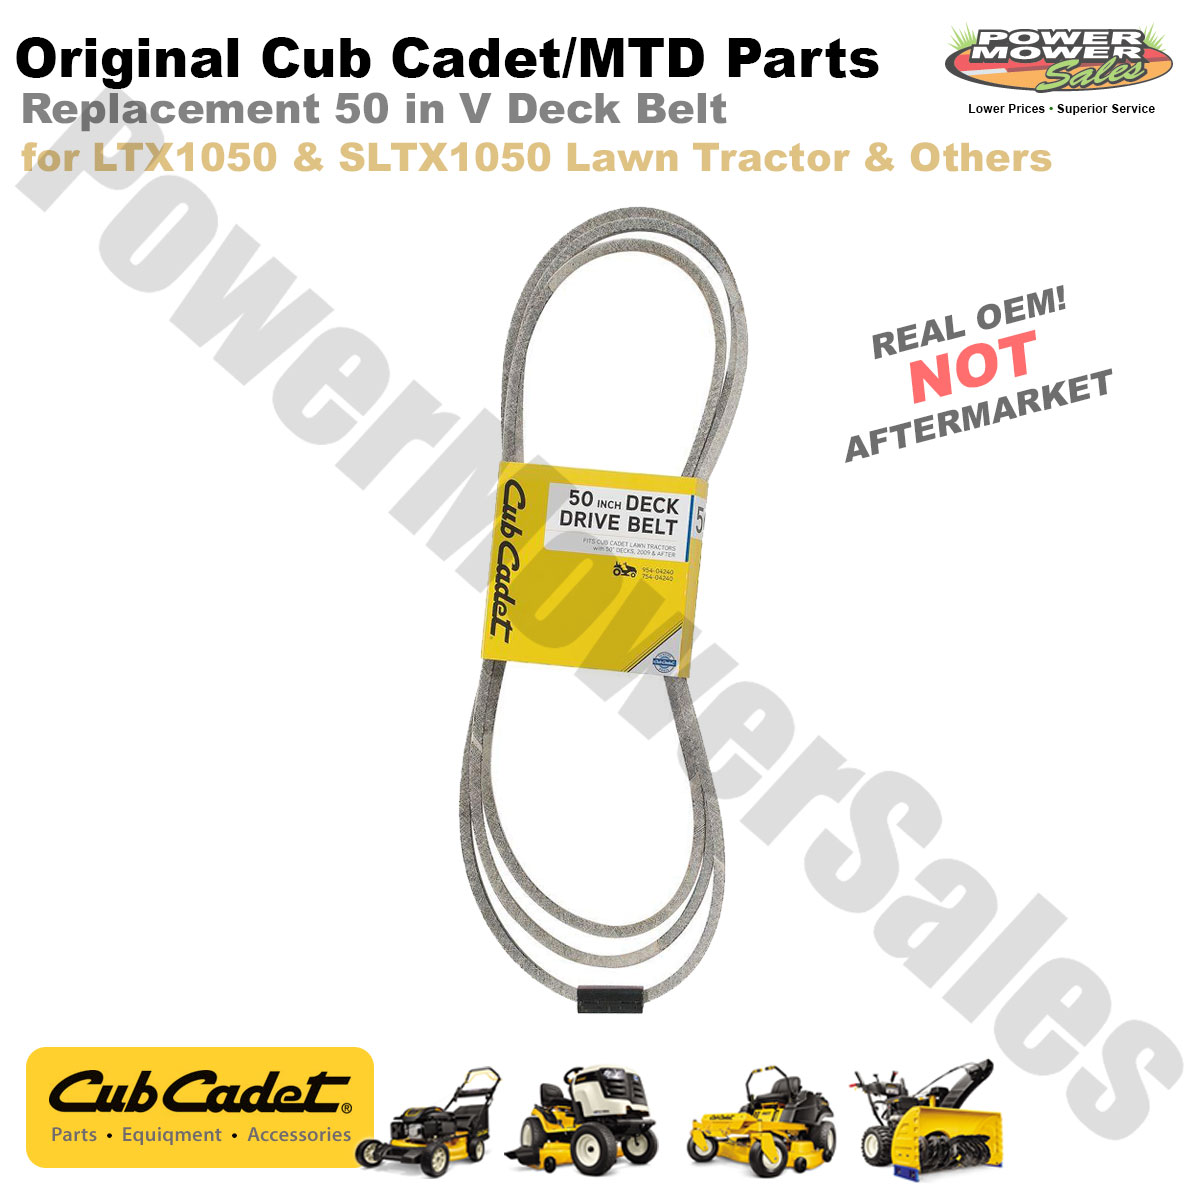 29 Cub Cadet Ltx 1050 Deck Belt Diagram